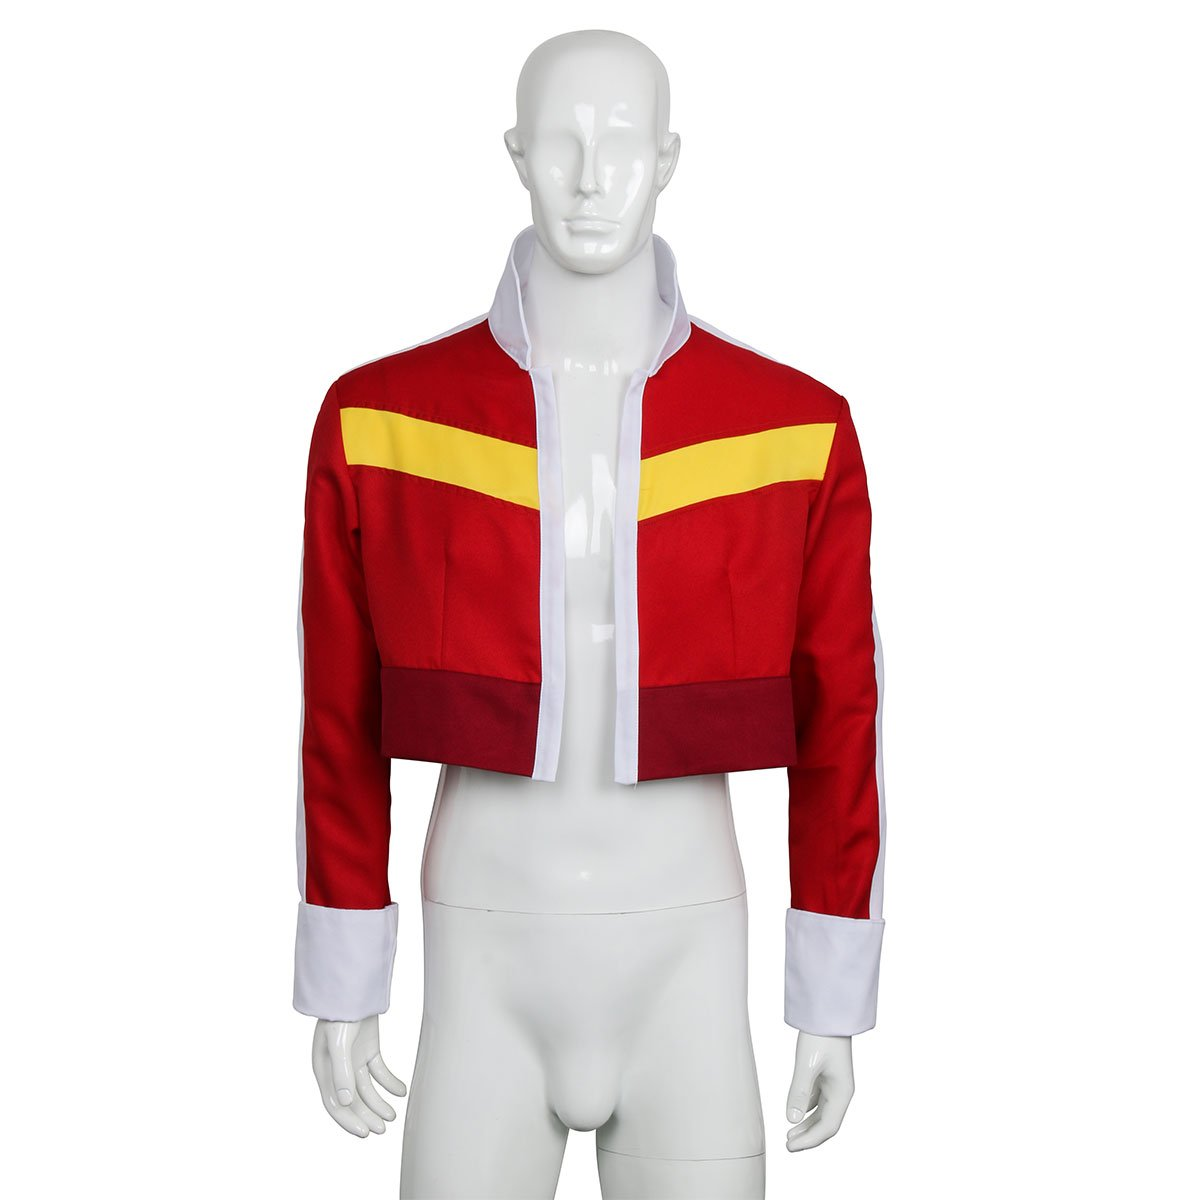 Partyever Red Paladins Jacket for Legendary Defender Keith Halloween Costume (Small, Women)